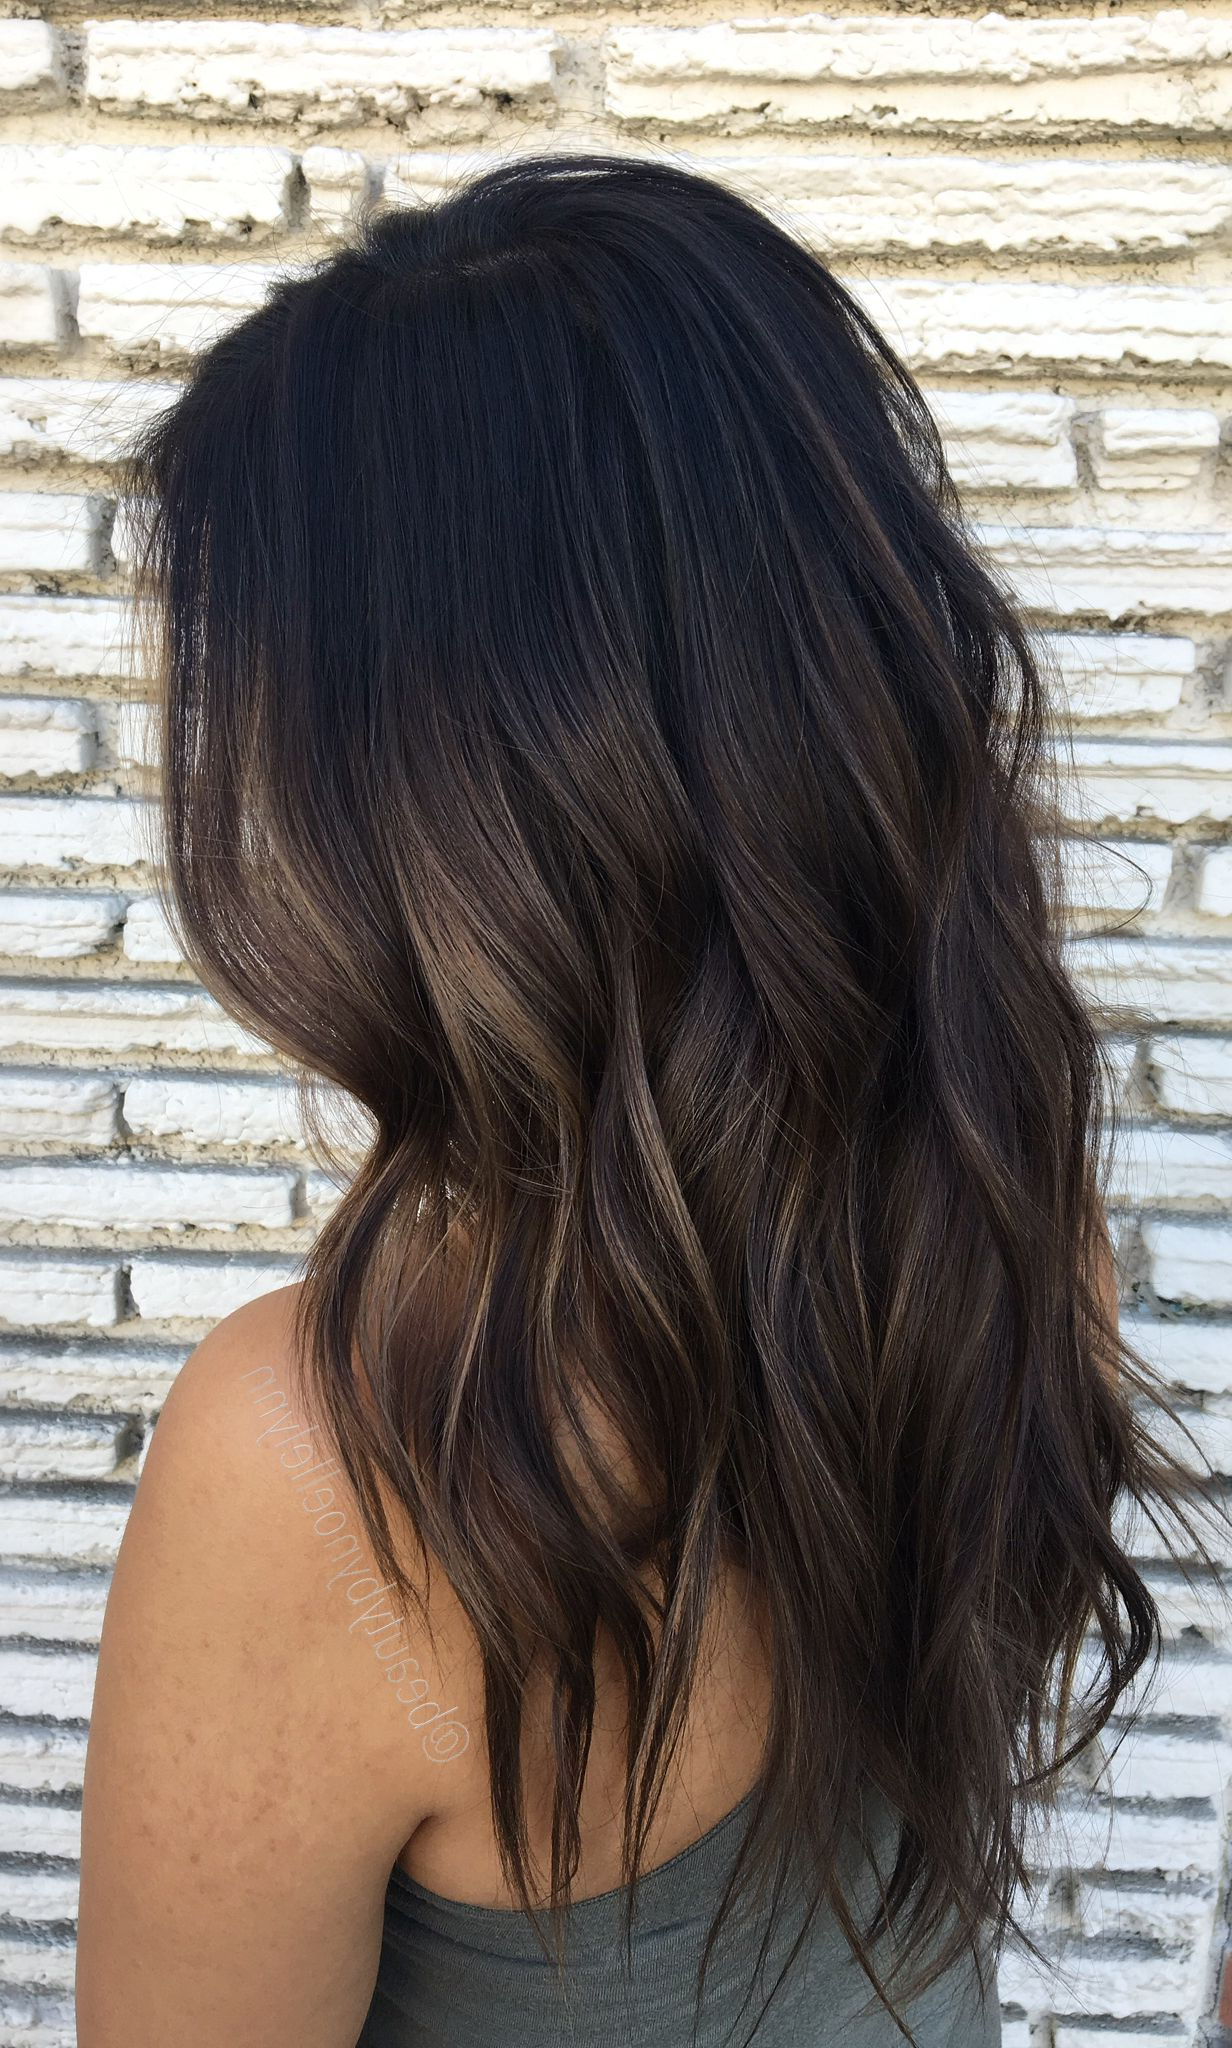 Subtle Brown Balayage | Hair Styles, Wine Hair, Subtle Pertaining To Subtle Balayage Highlights For Short Hairstyles (View 14 of 20)